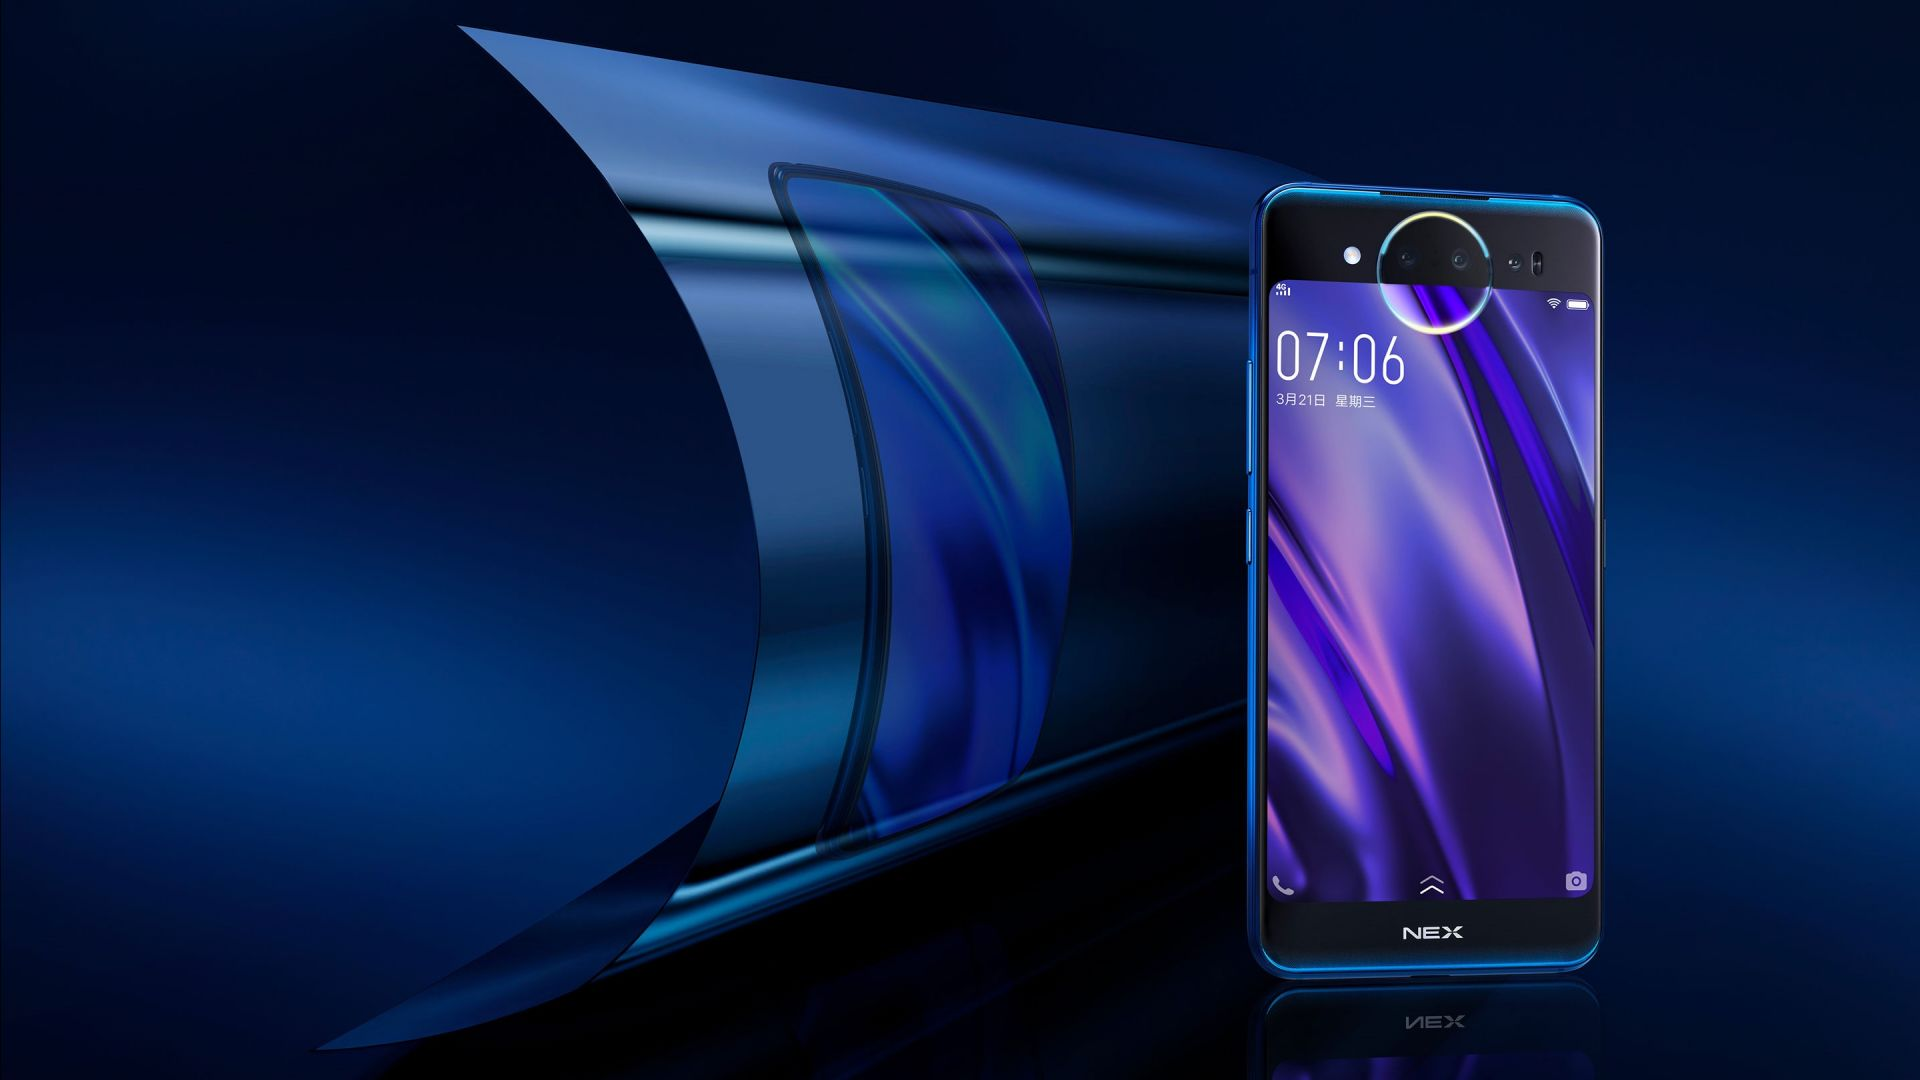 Wallpaper Vivo NEX Dual Display Edition, HD, Hi-Tech #20997